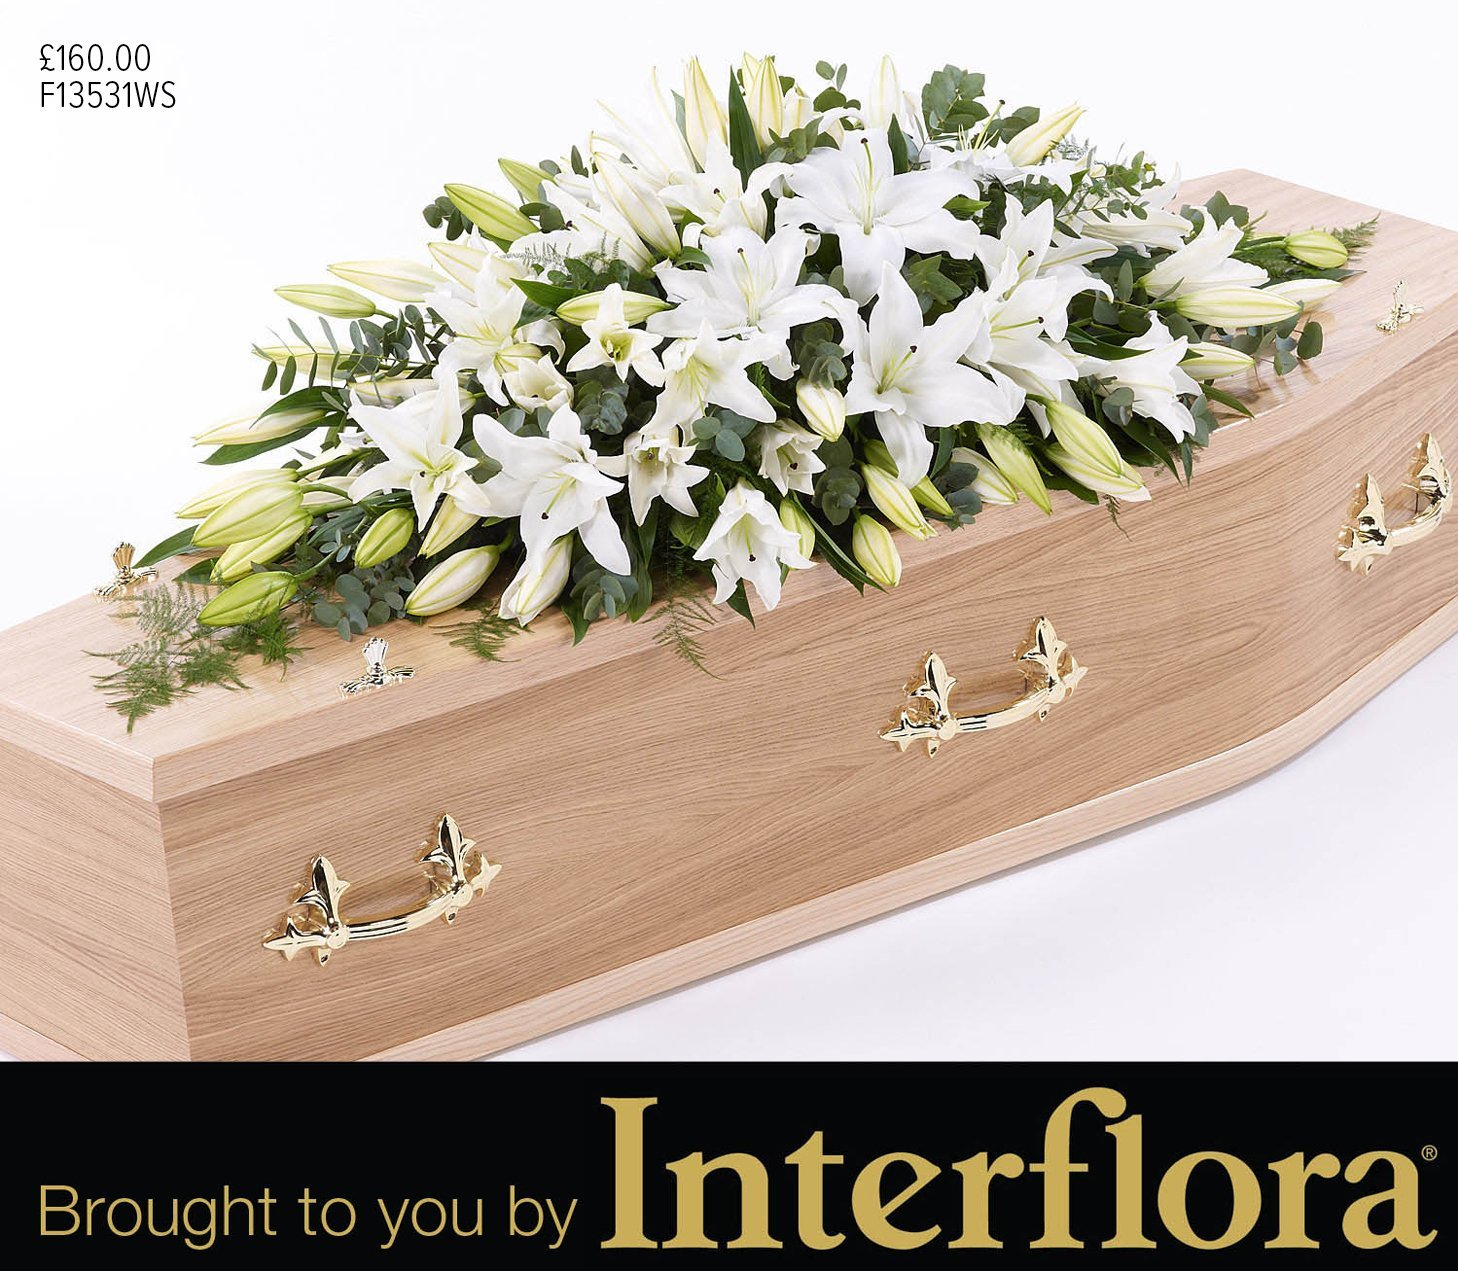 Mortons double ended arrangement flowers brought to you by Interflora